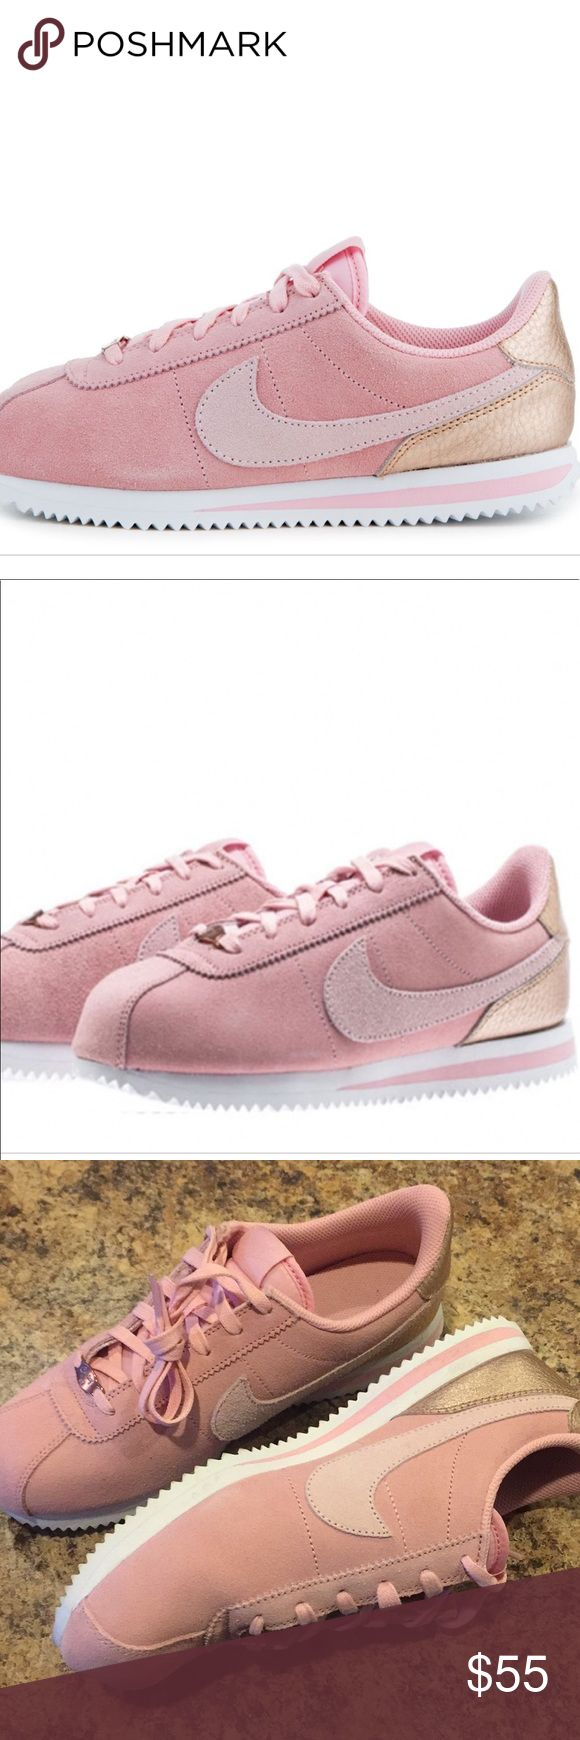 Nike Cortez Baby Pink Suede/Rose Gold! 7Y/8.5WNS This is a pair of Bike Cortez in baby pink suede and rose gold detail. These have been worn once! There is a scuff on the toe as seen in the pics. Super cute color and super comfy! Size 7Y or 8.5 Women. No box. Nike Shoes Sneakers